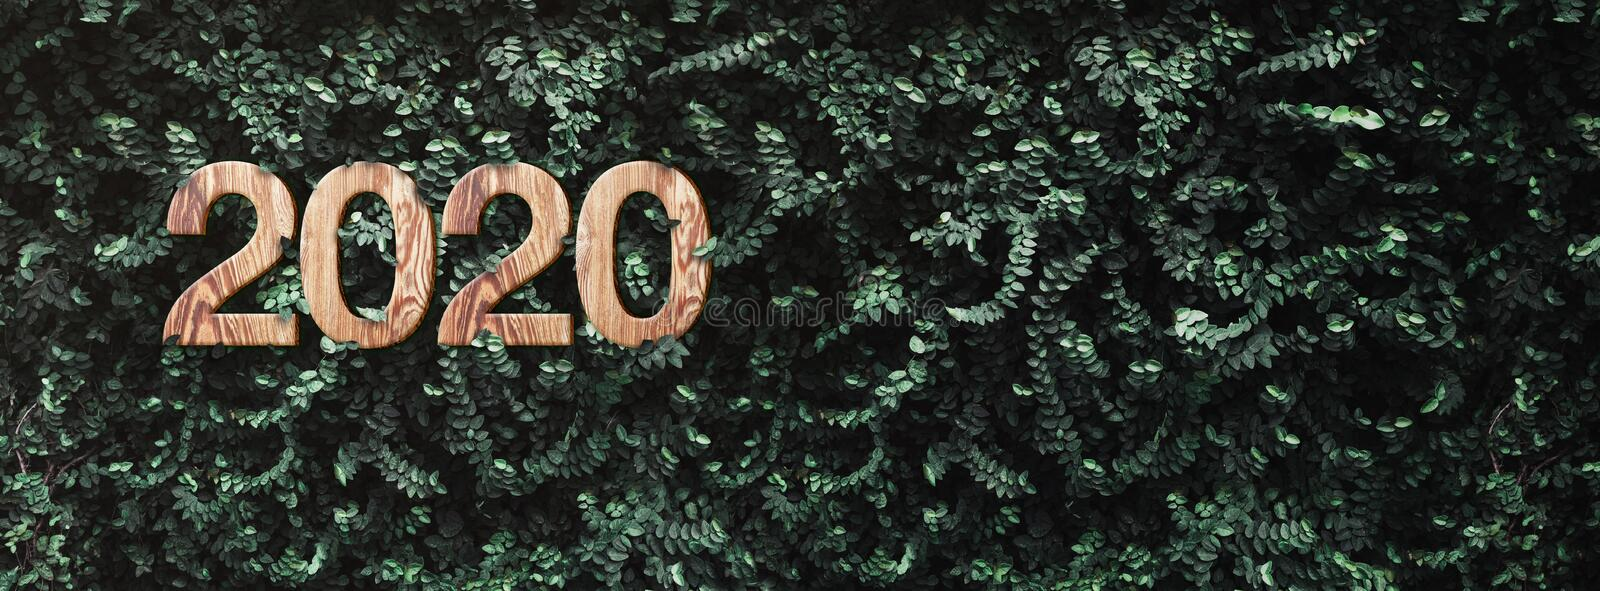 2020 happy new year wood texture number on Green leaves wall background,Nature eco concept,organic greeting card holiday.banner royalty free stock photography